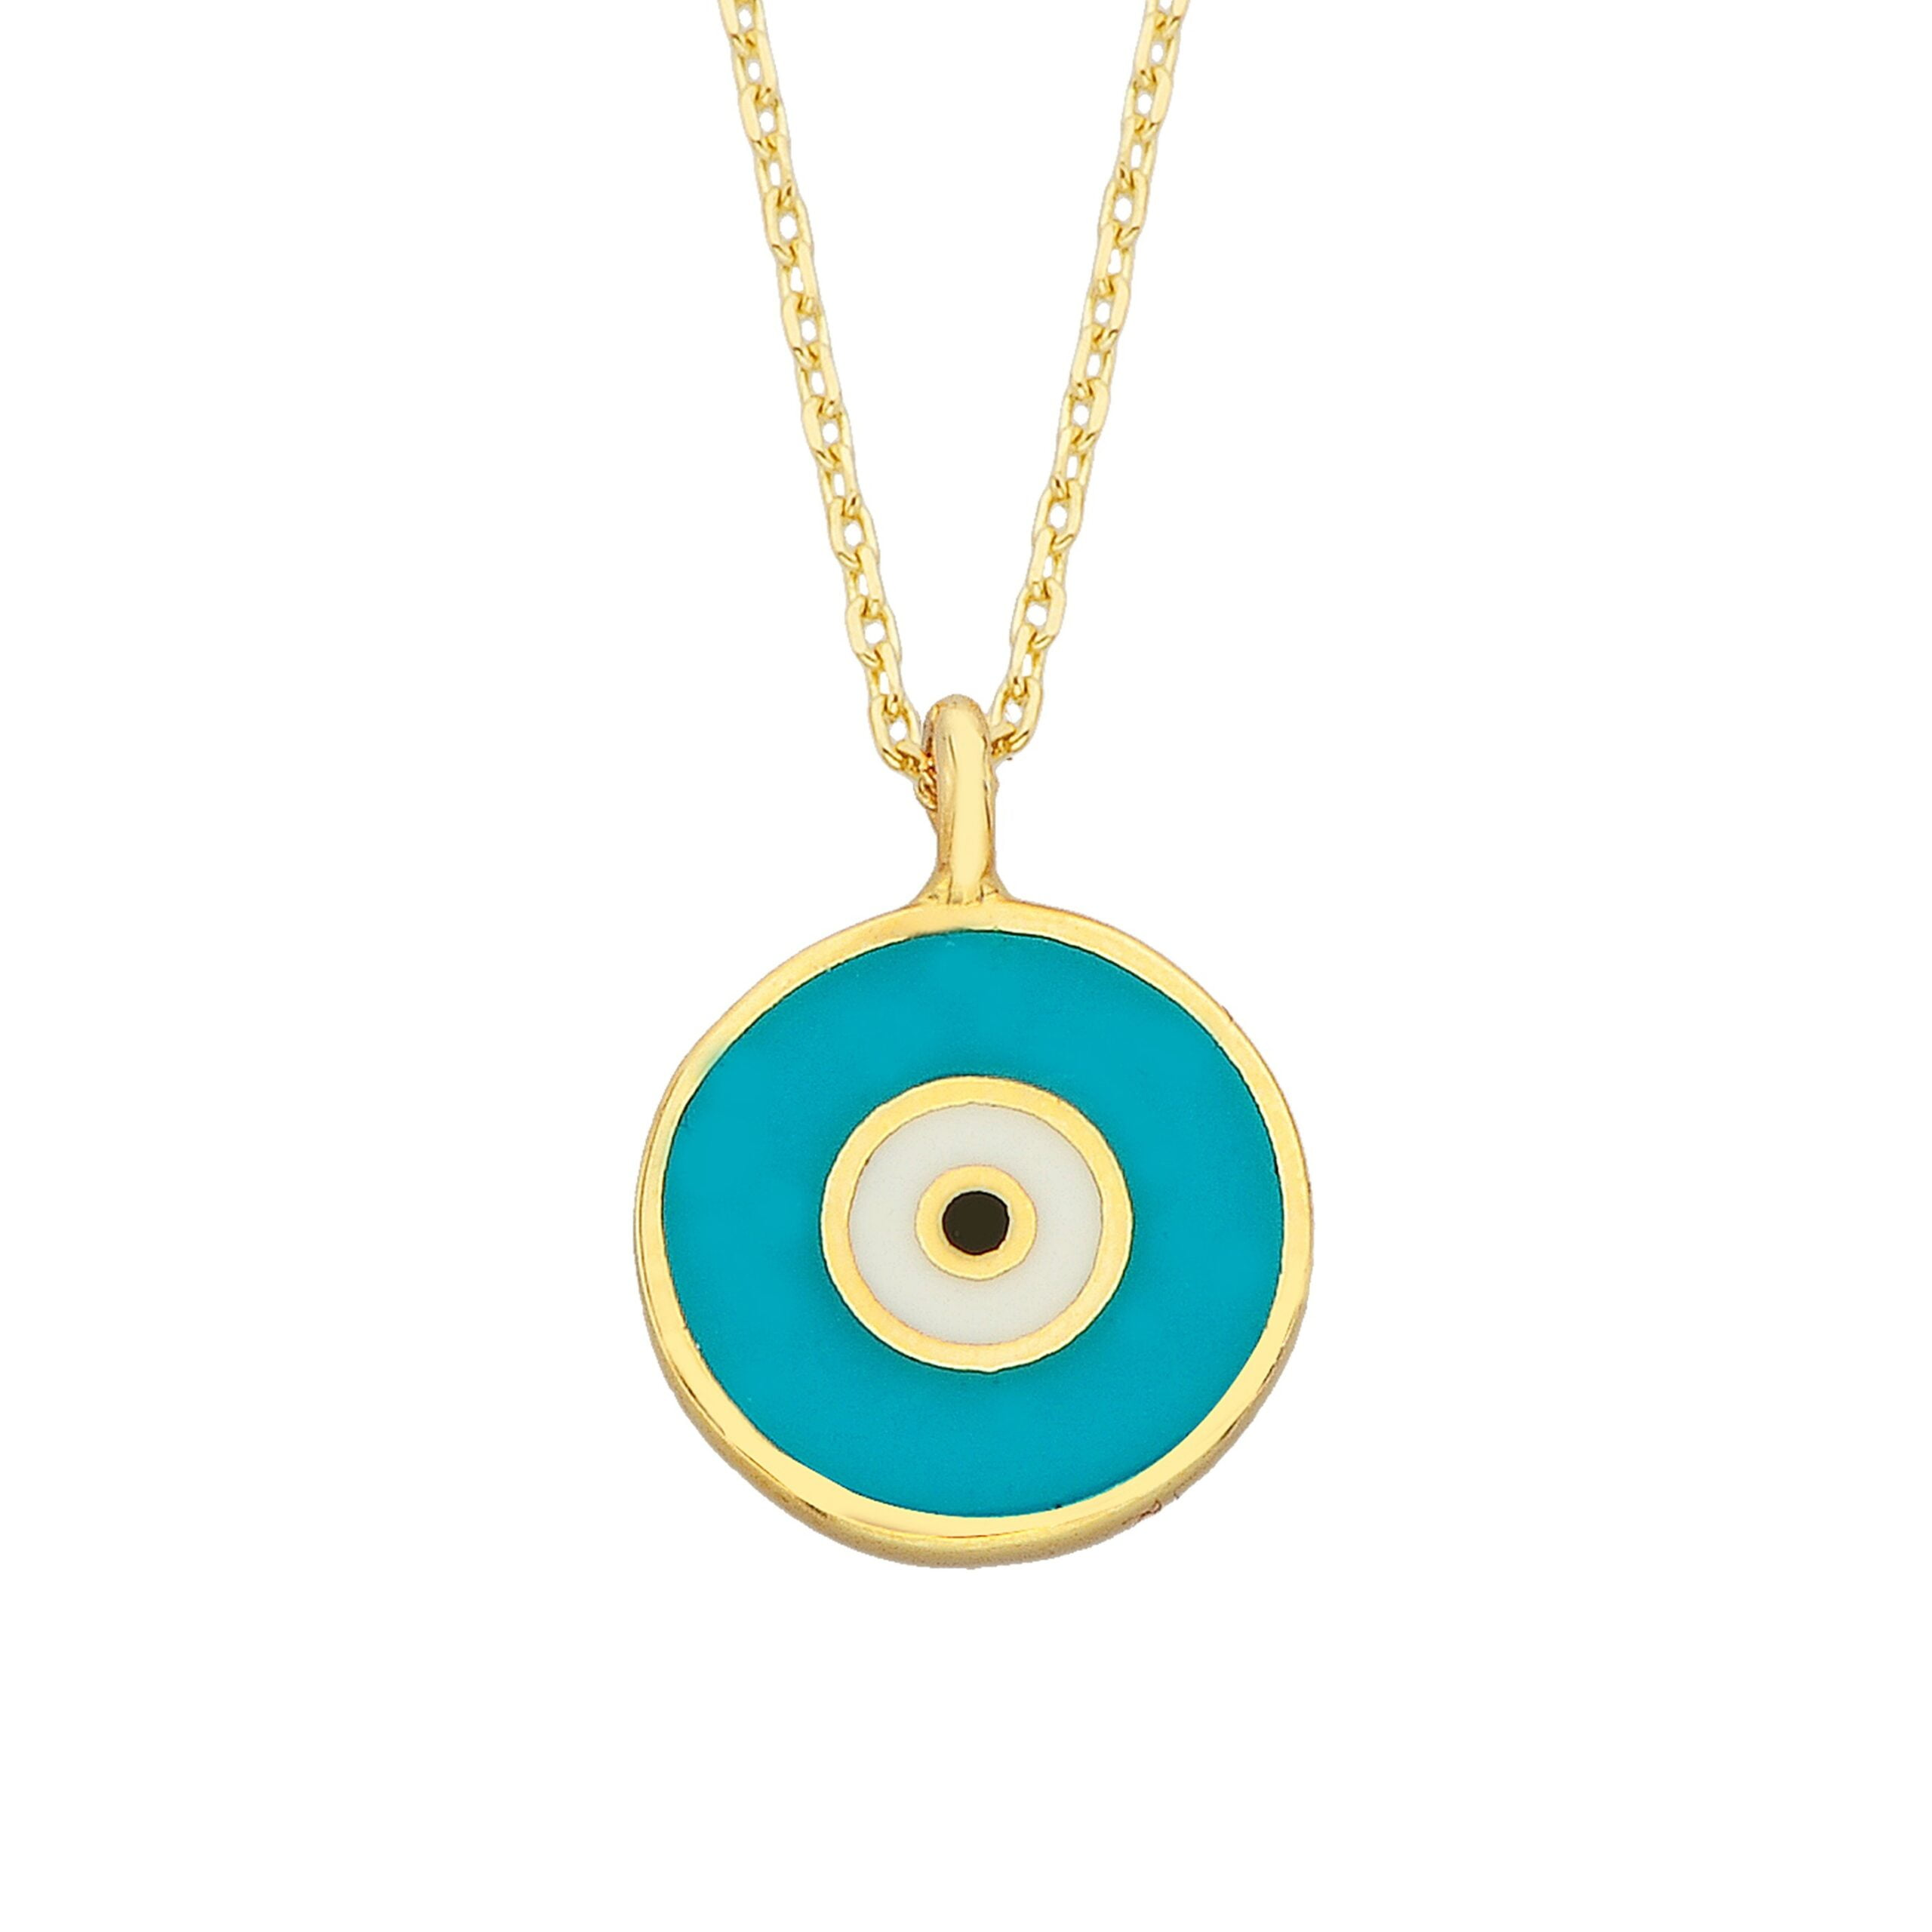 Evil Eye Necklace Lucky Luck Nazar Protection For Women 14K Yellow Gold Pendant Jewelry Turquoise White Navy Blue Birthday Mother's Day Christmas Gift jewelry